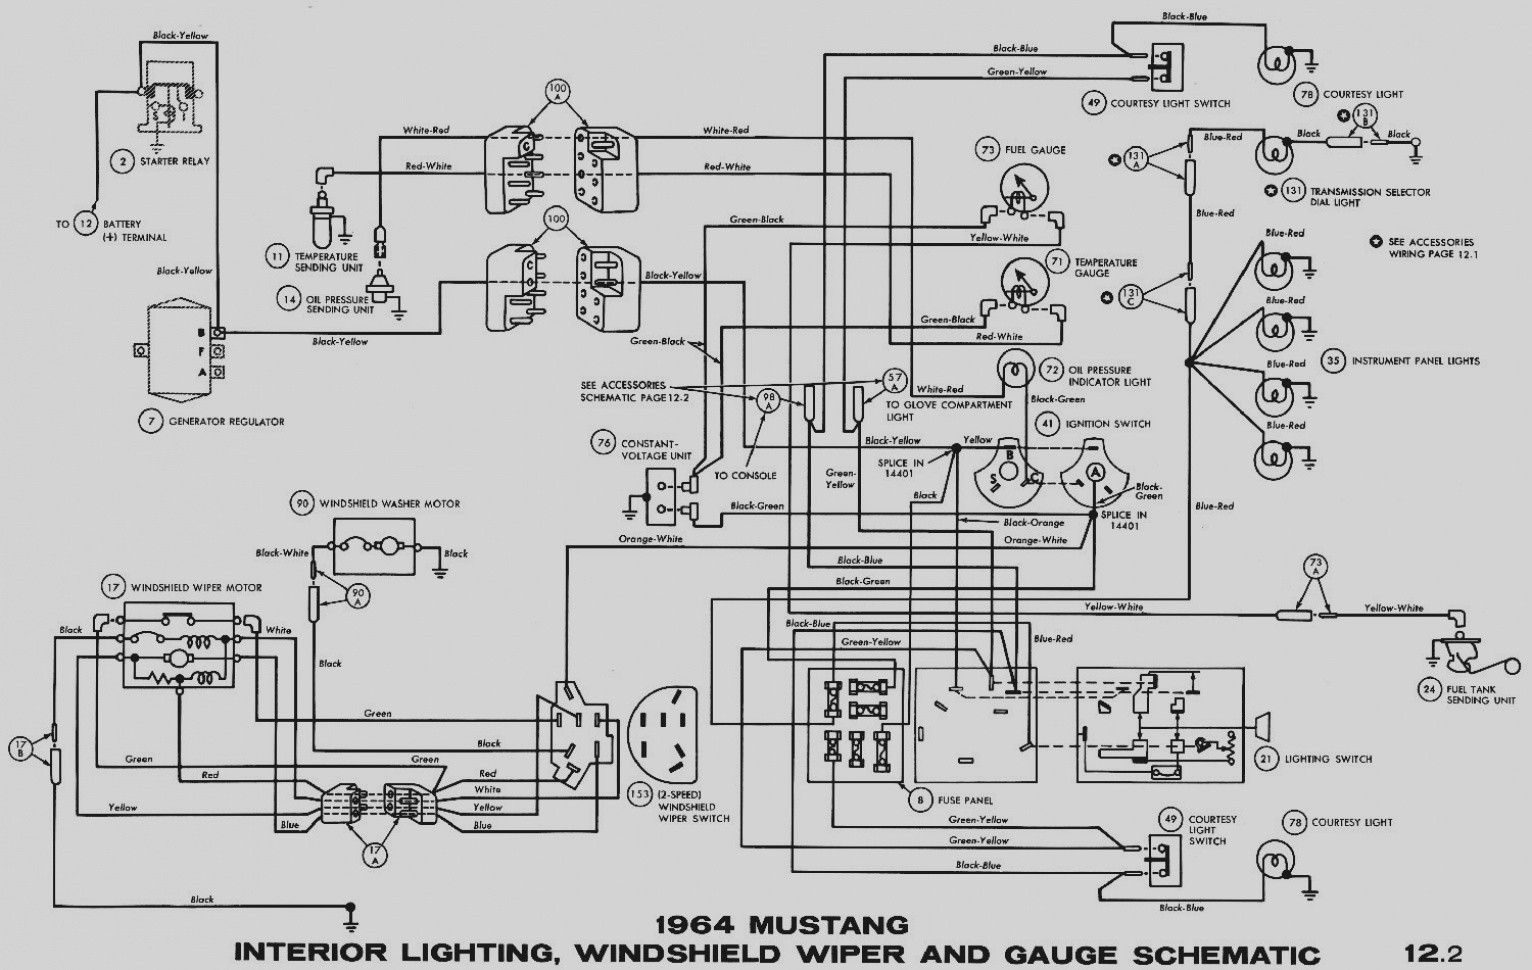 lamp wiring diagram 1970 mustang sport wiring diagram center u2022 rh culinaryco co